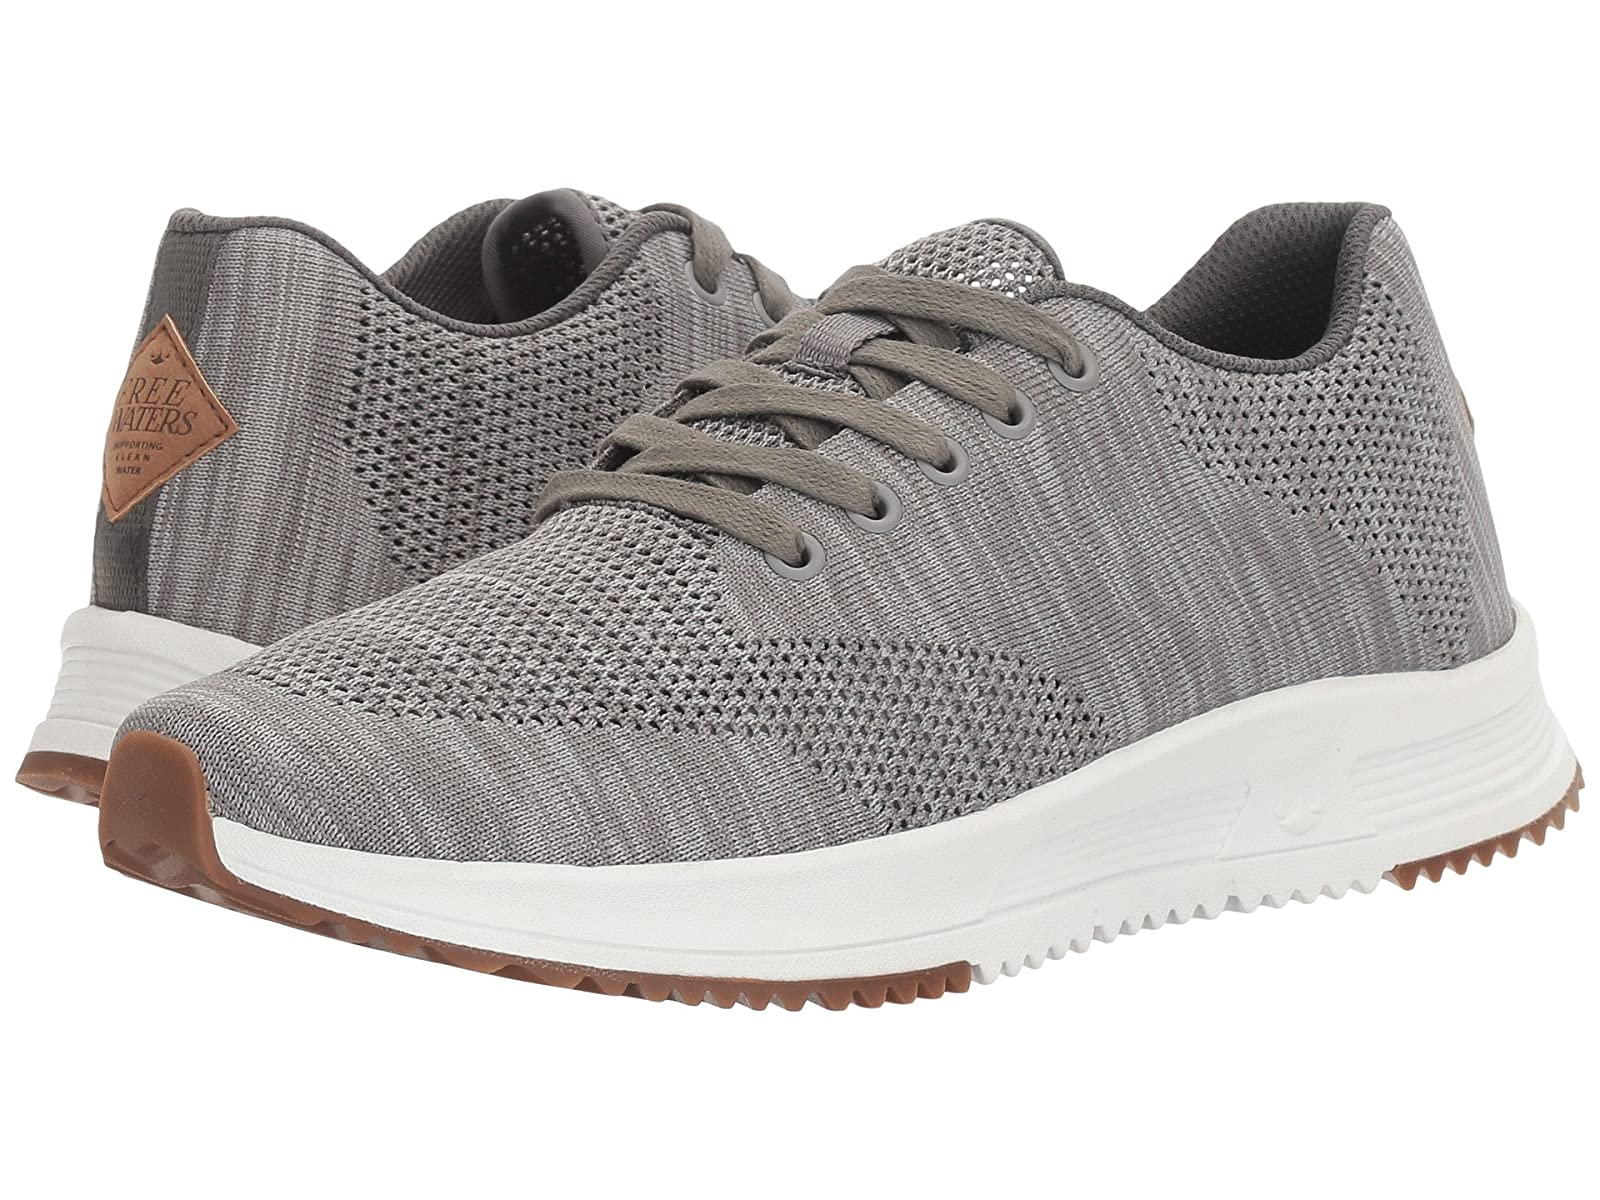 Freewaters Tall Boy Trainer KnitCheap and distinctive eye-catching shoes